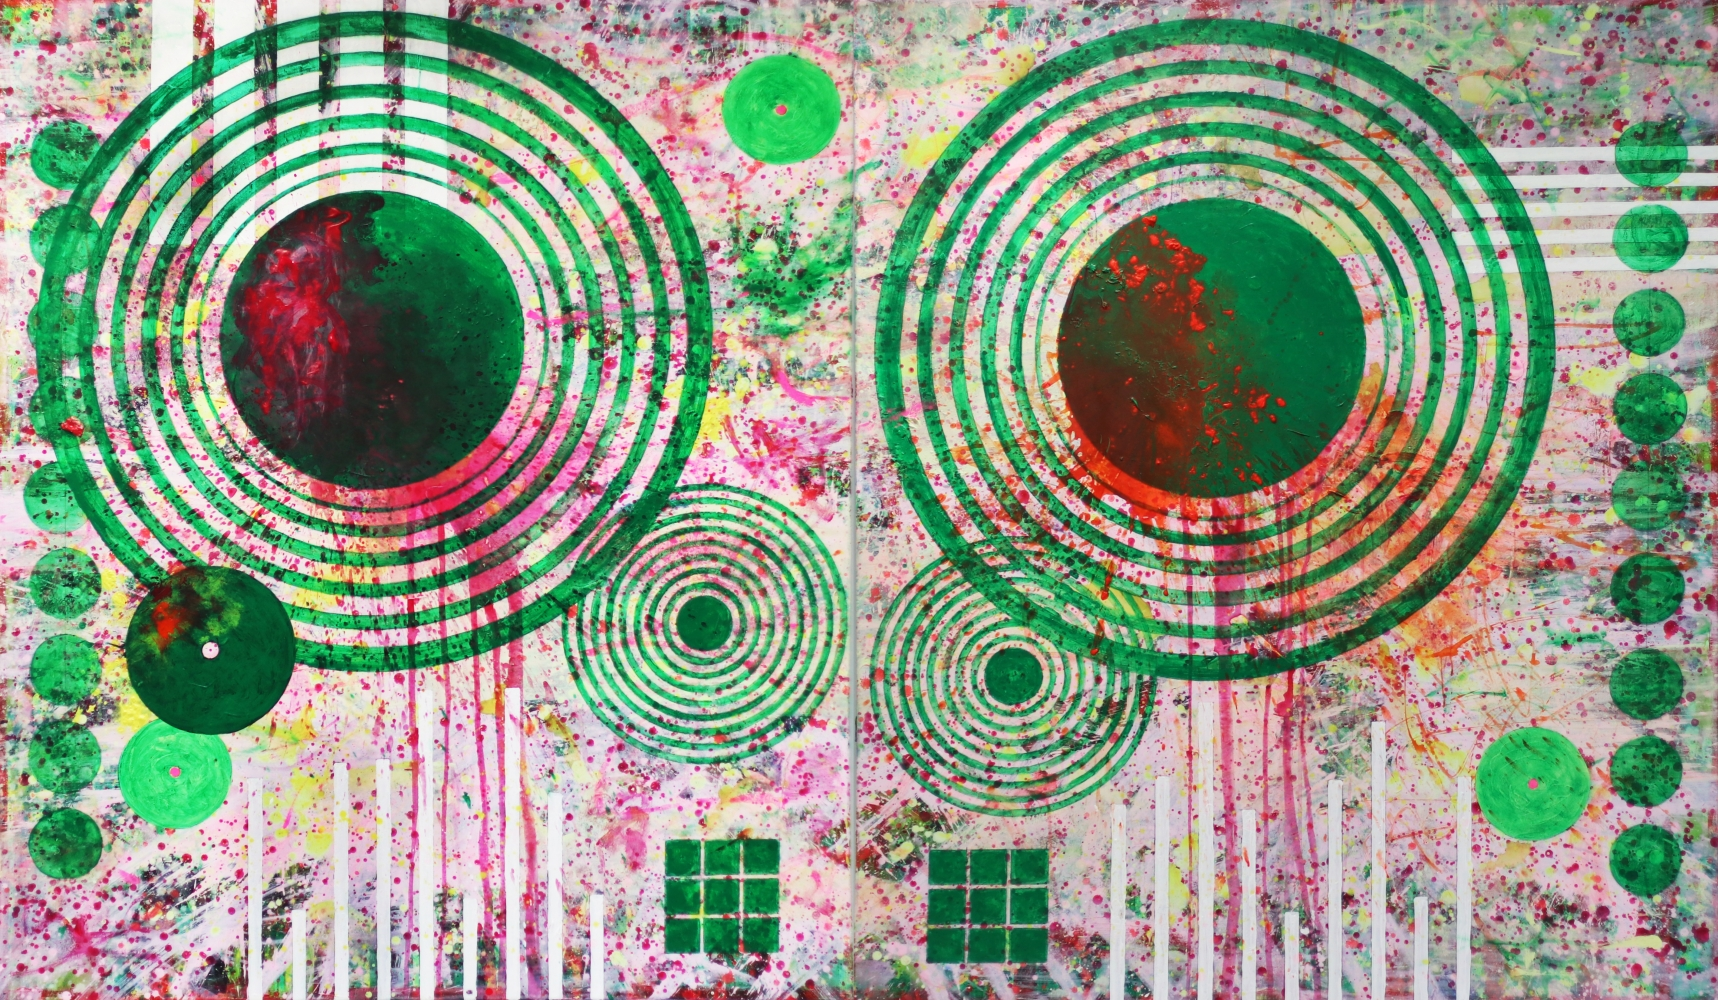 J. Steven Manolis, Target-Golf (Riviera), 2017, 72 x 120 inches, acrylic painting on canvas, geometric abstract expressionism art